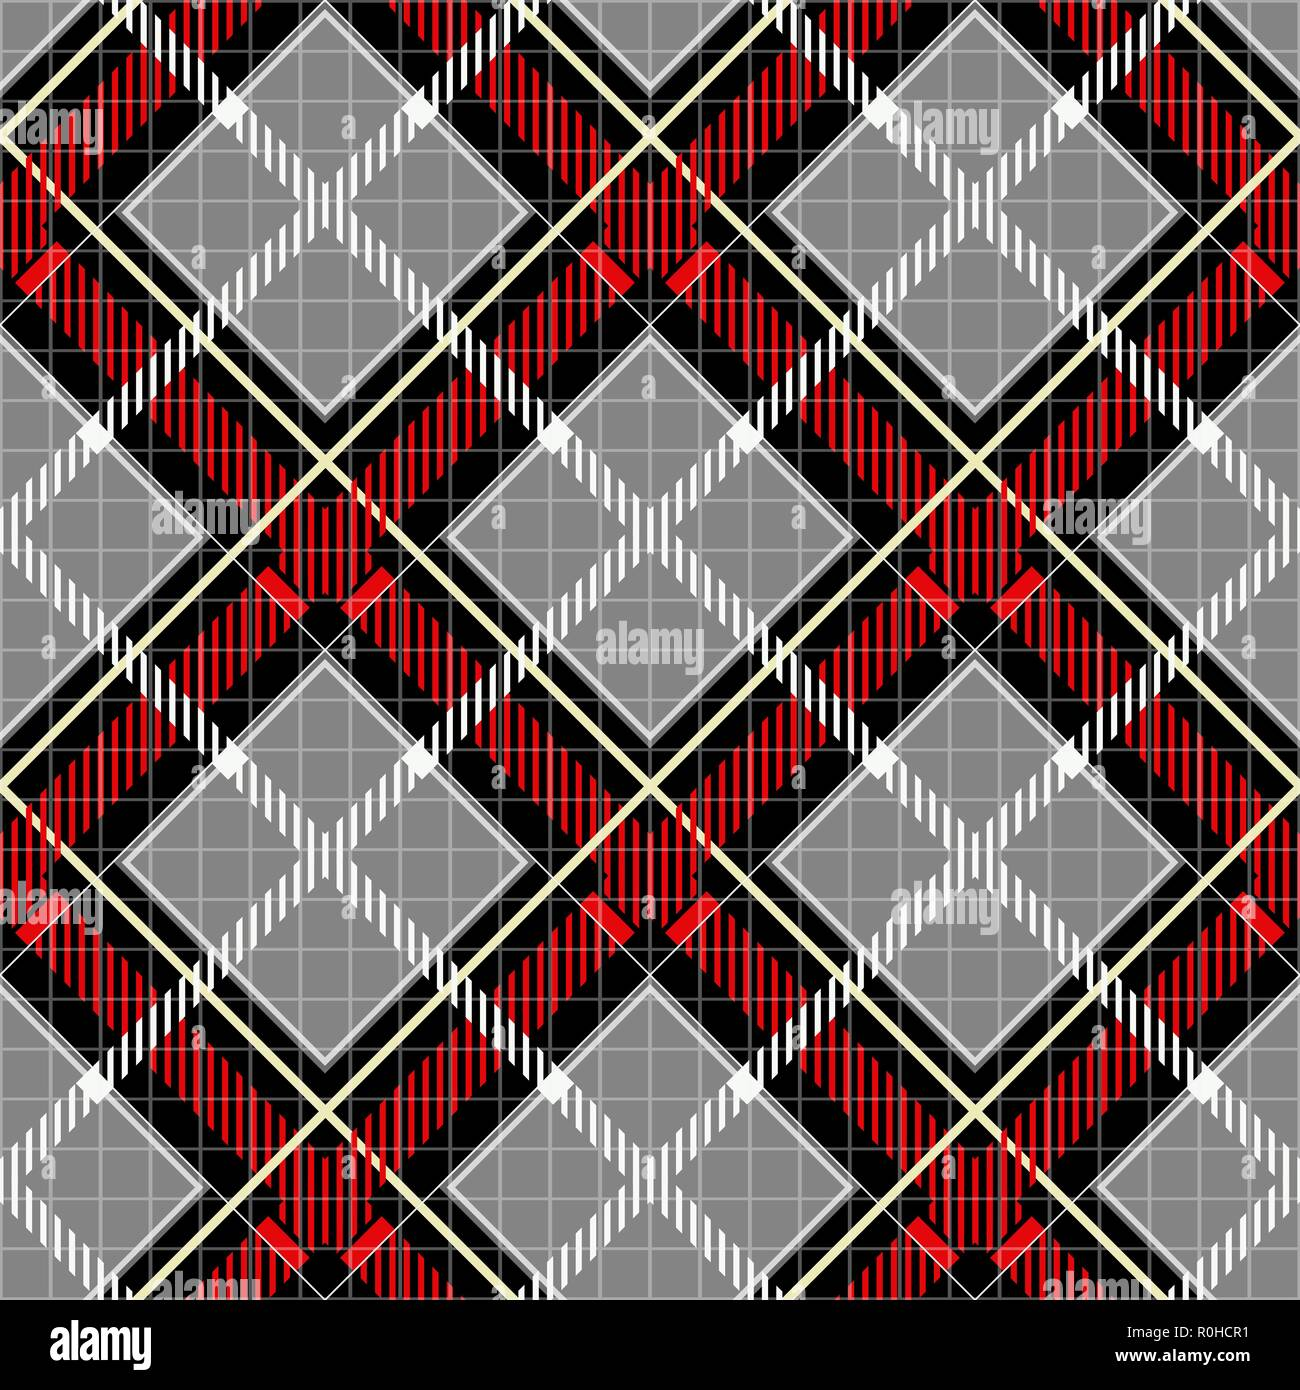 Classical Shirt Seamless Pattern Checkered Plaid Vector Background Retro Textile Design Motifs Chequered Cotton Fabric Checkers With Hatched Strip Stock Vector Image Art Alamy